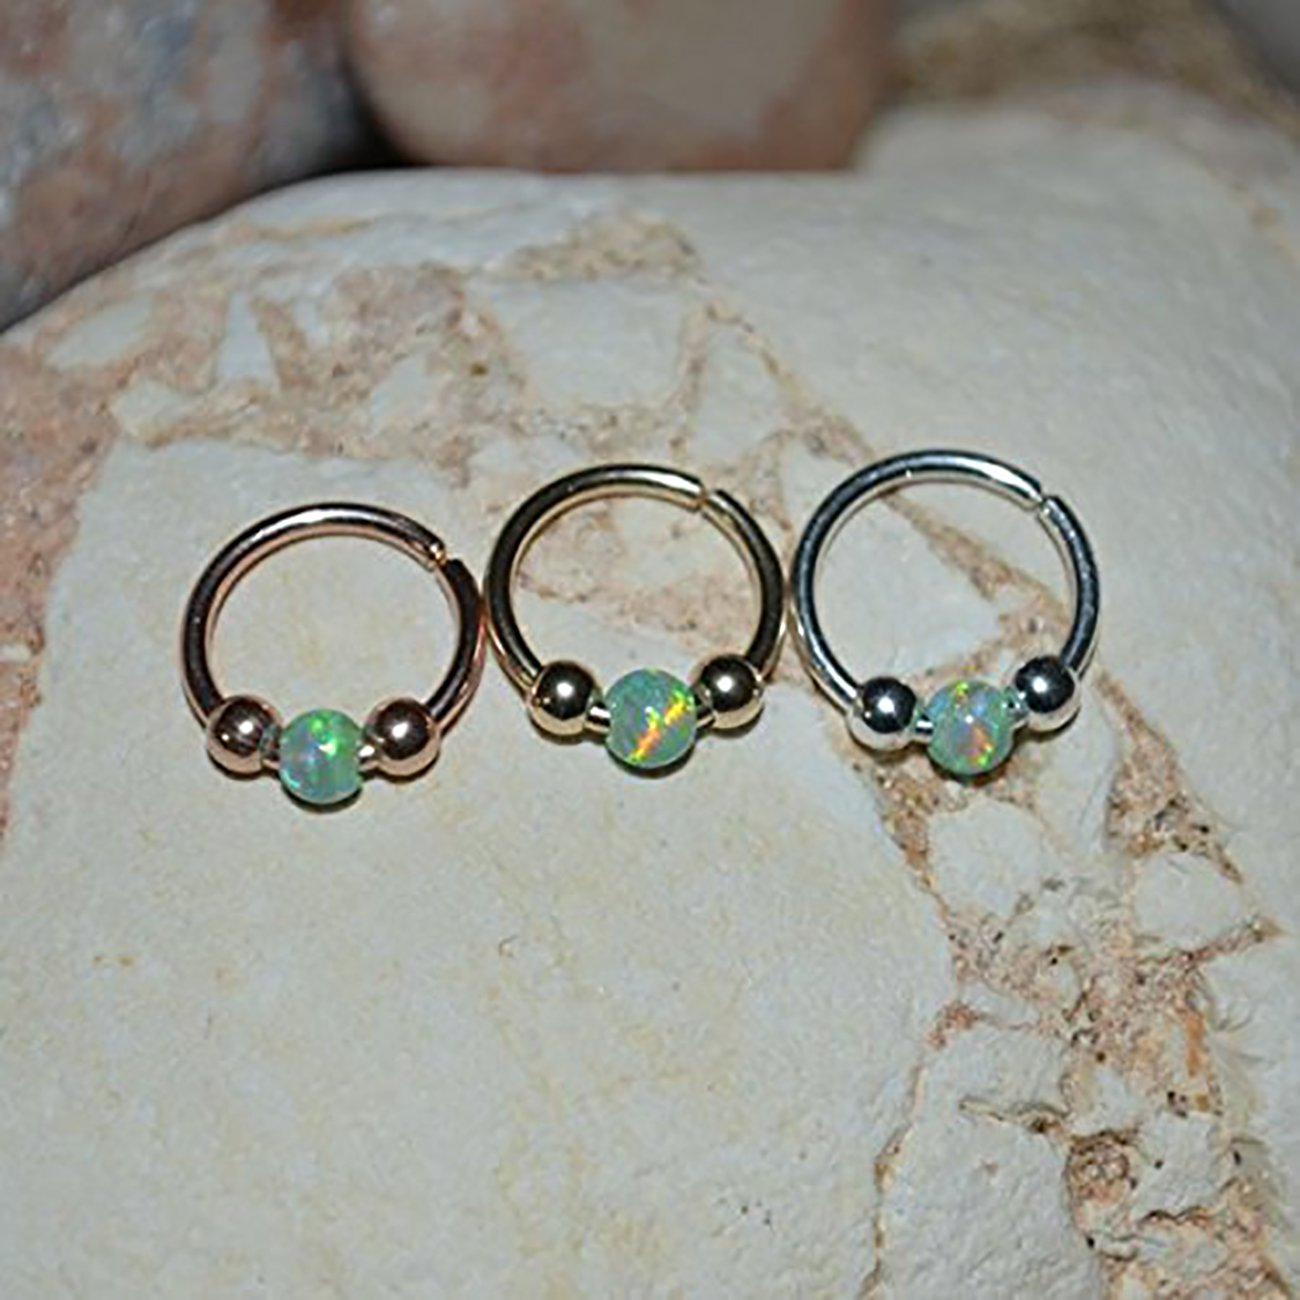 Opal SEPTUM RING 18g // Silver Nose Ring - Cartilage Earring - Septum Hoop - Rook Piercing - Septum Piercing - Nipple Ring